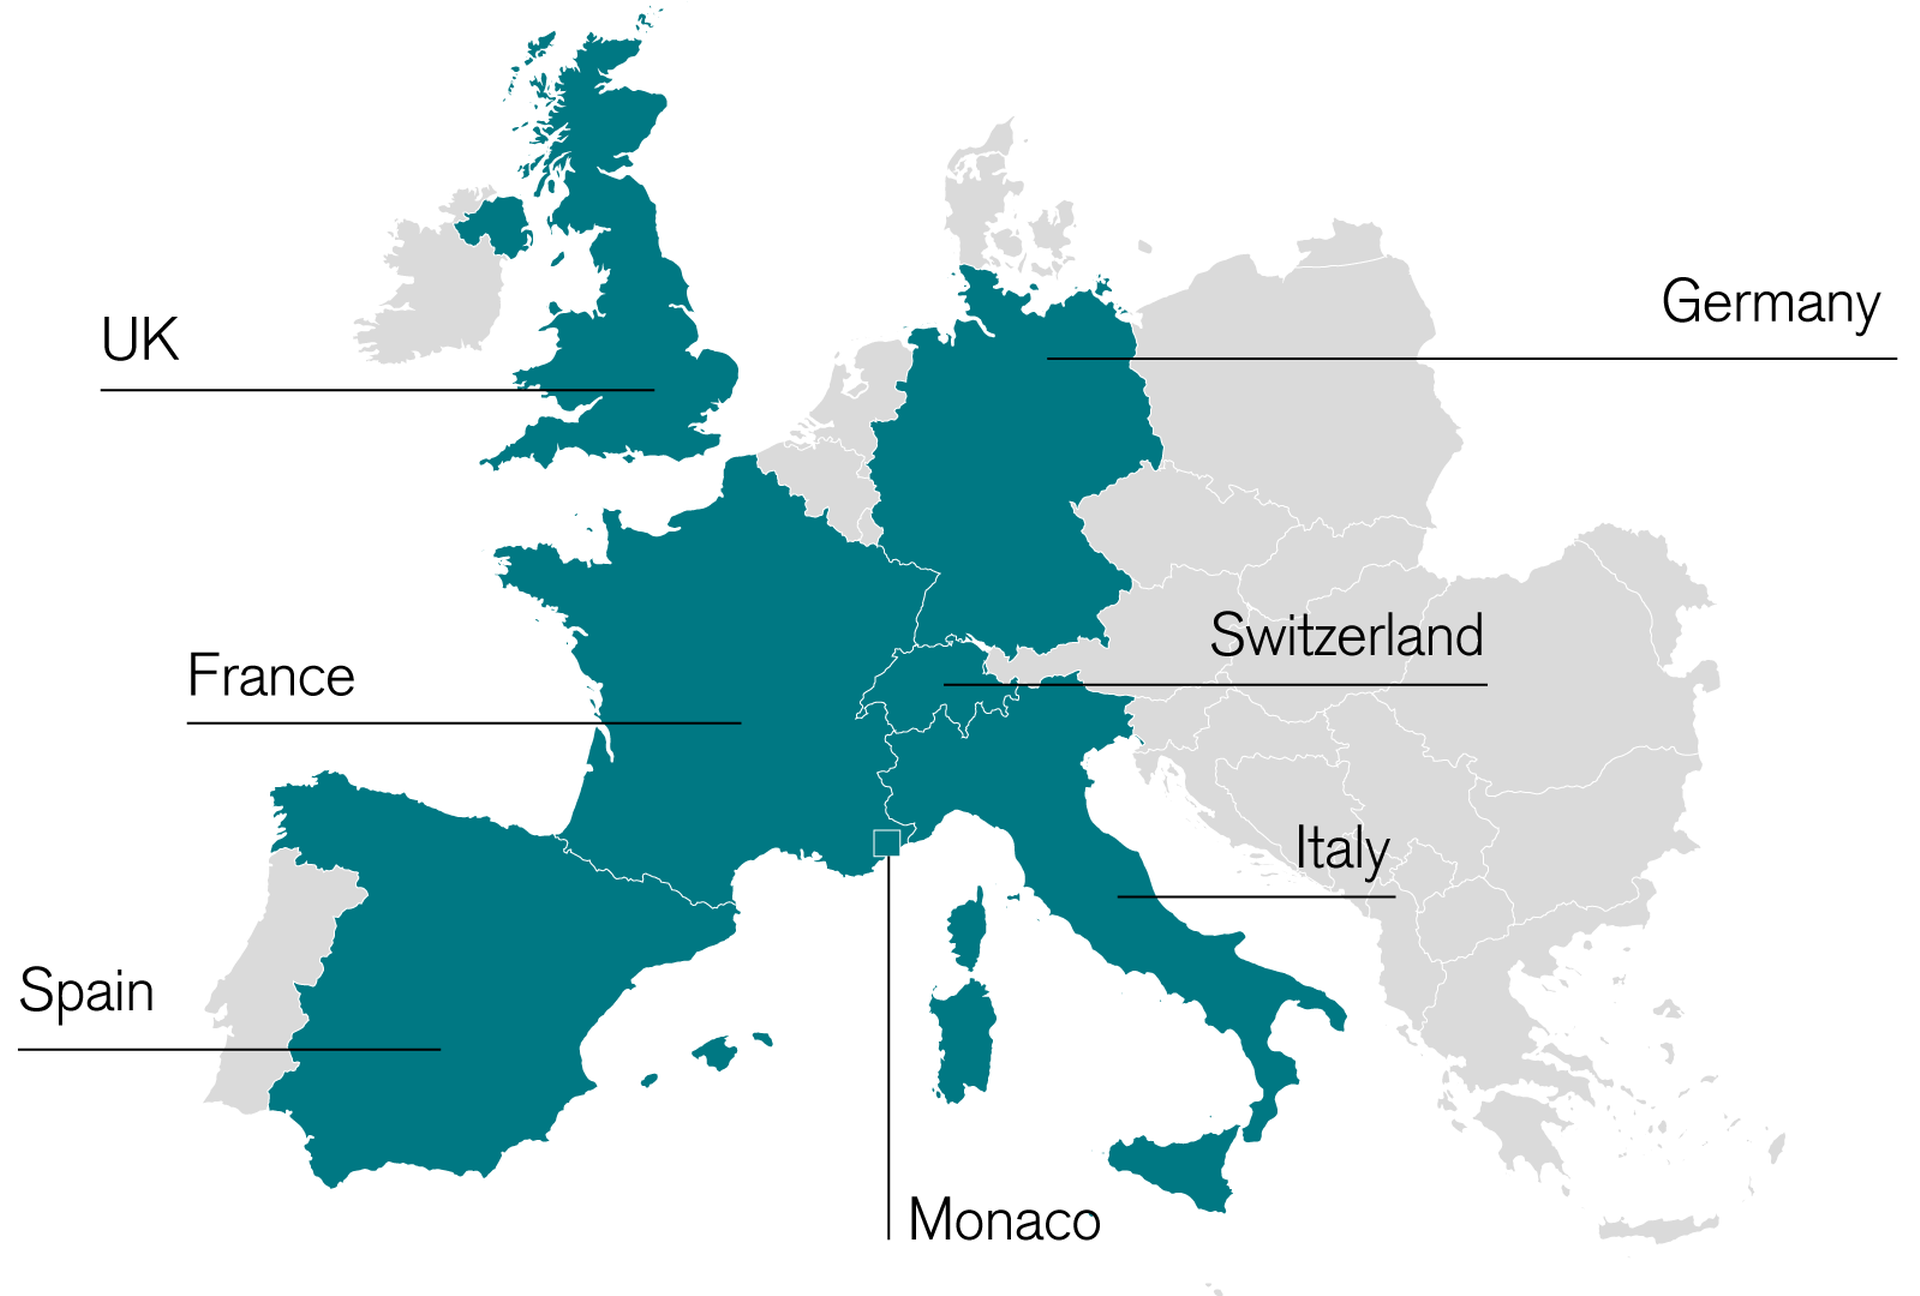 Cross-border support Real estate financing for wealthy individuals in Europe